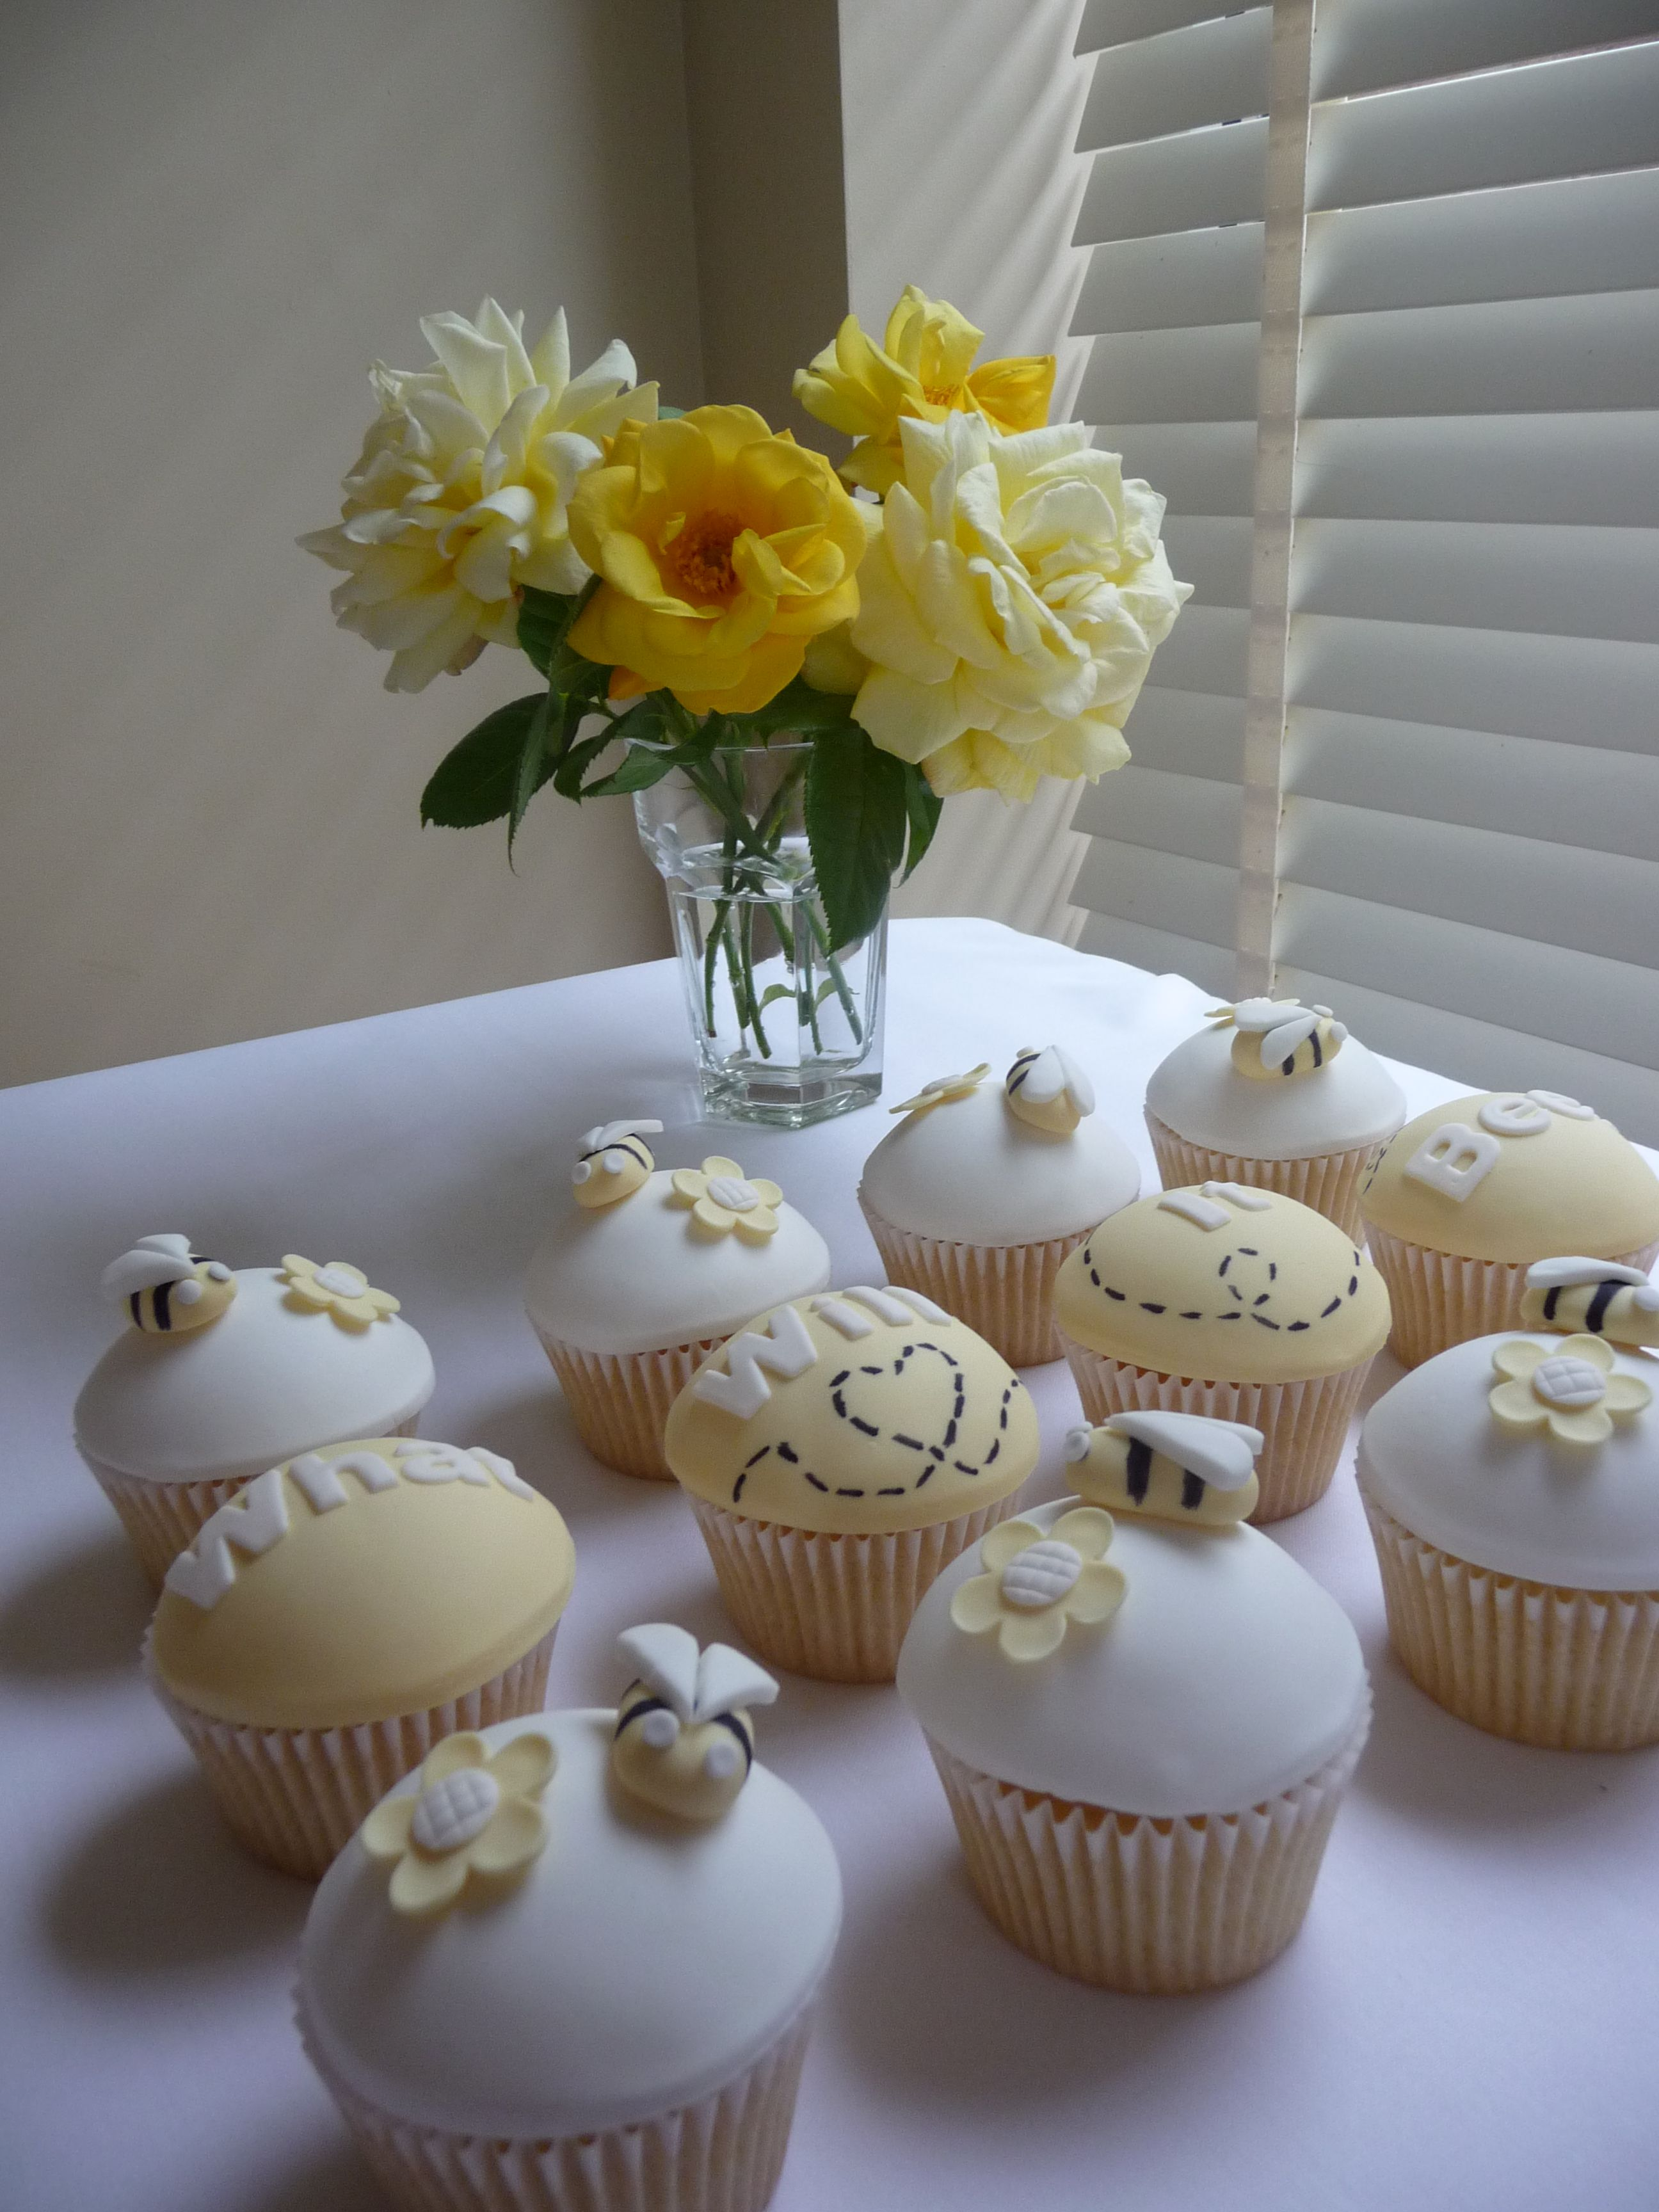 These Are Baby Shower Cupcakes With A Bumble Bee Theme